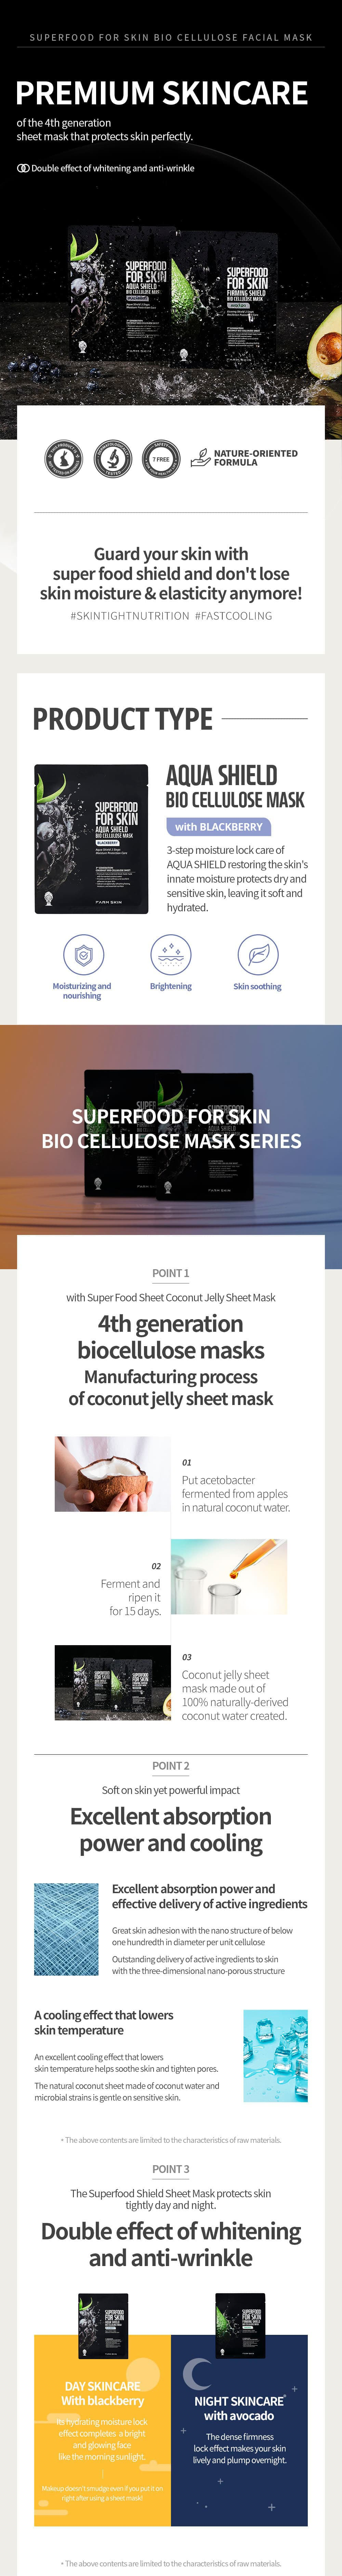 Superfood For Skin Firming Shield Bio Cellulose Mask